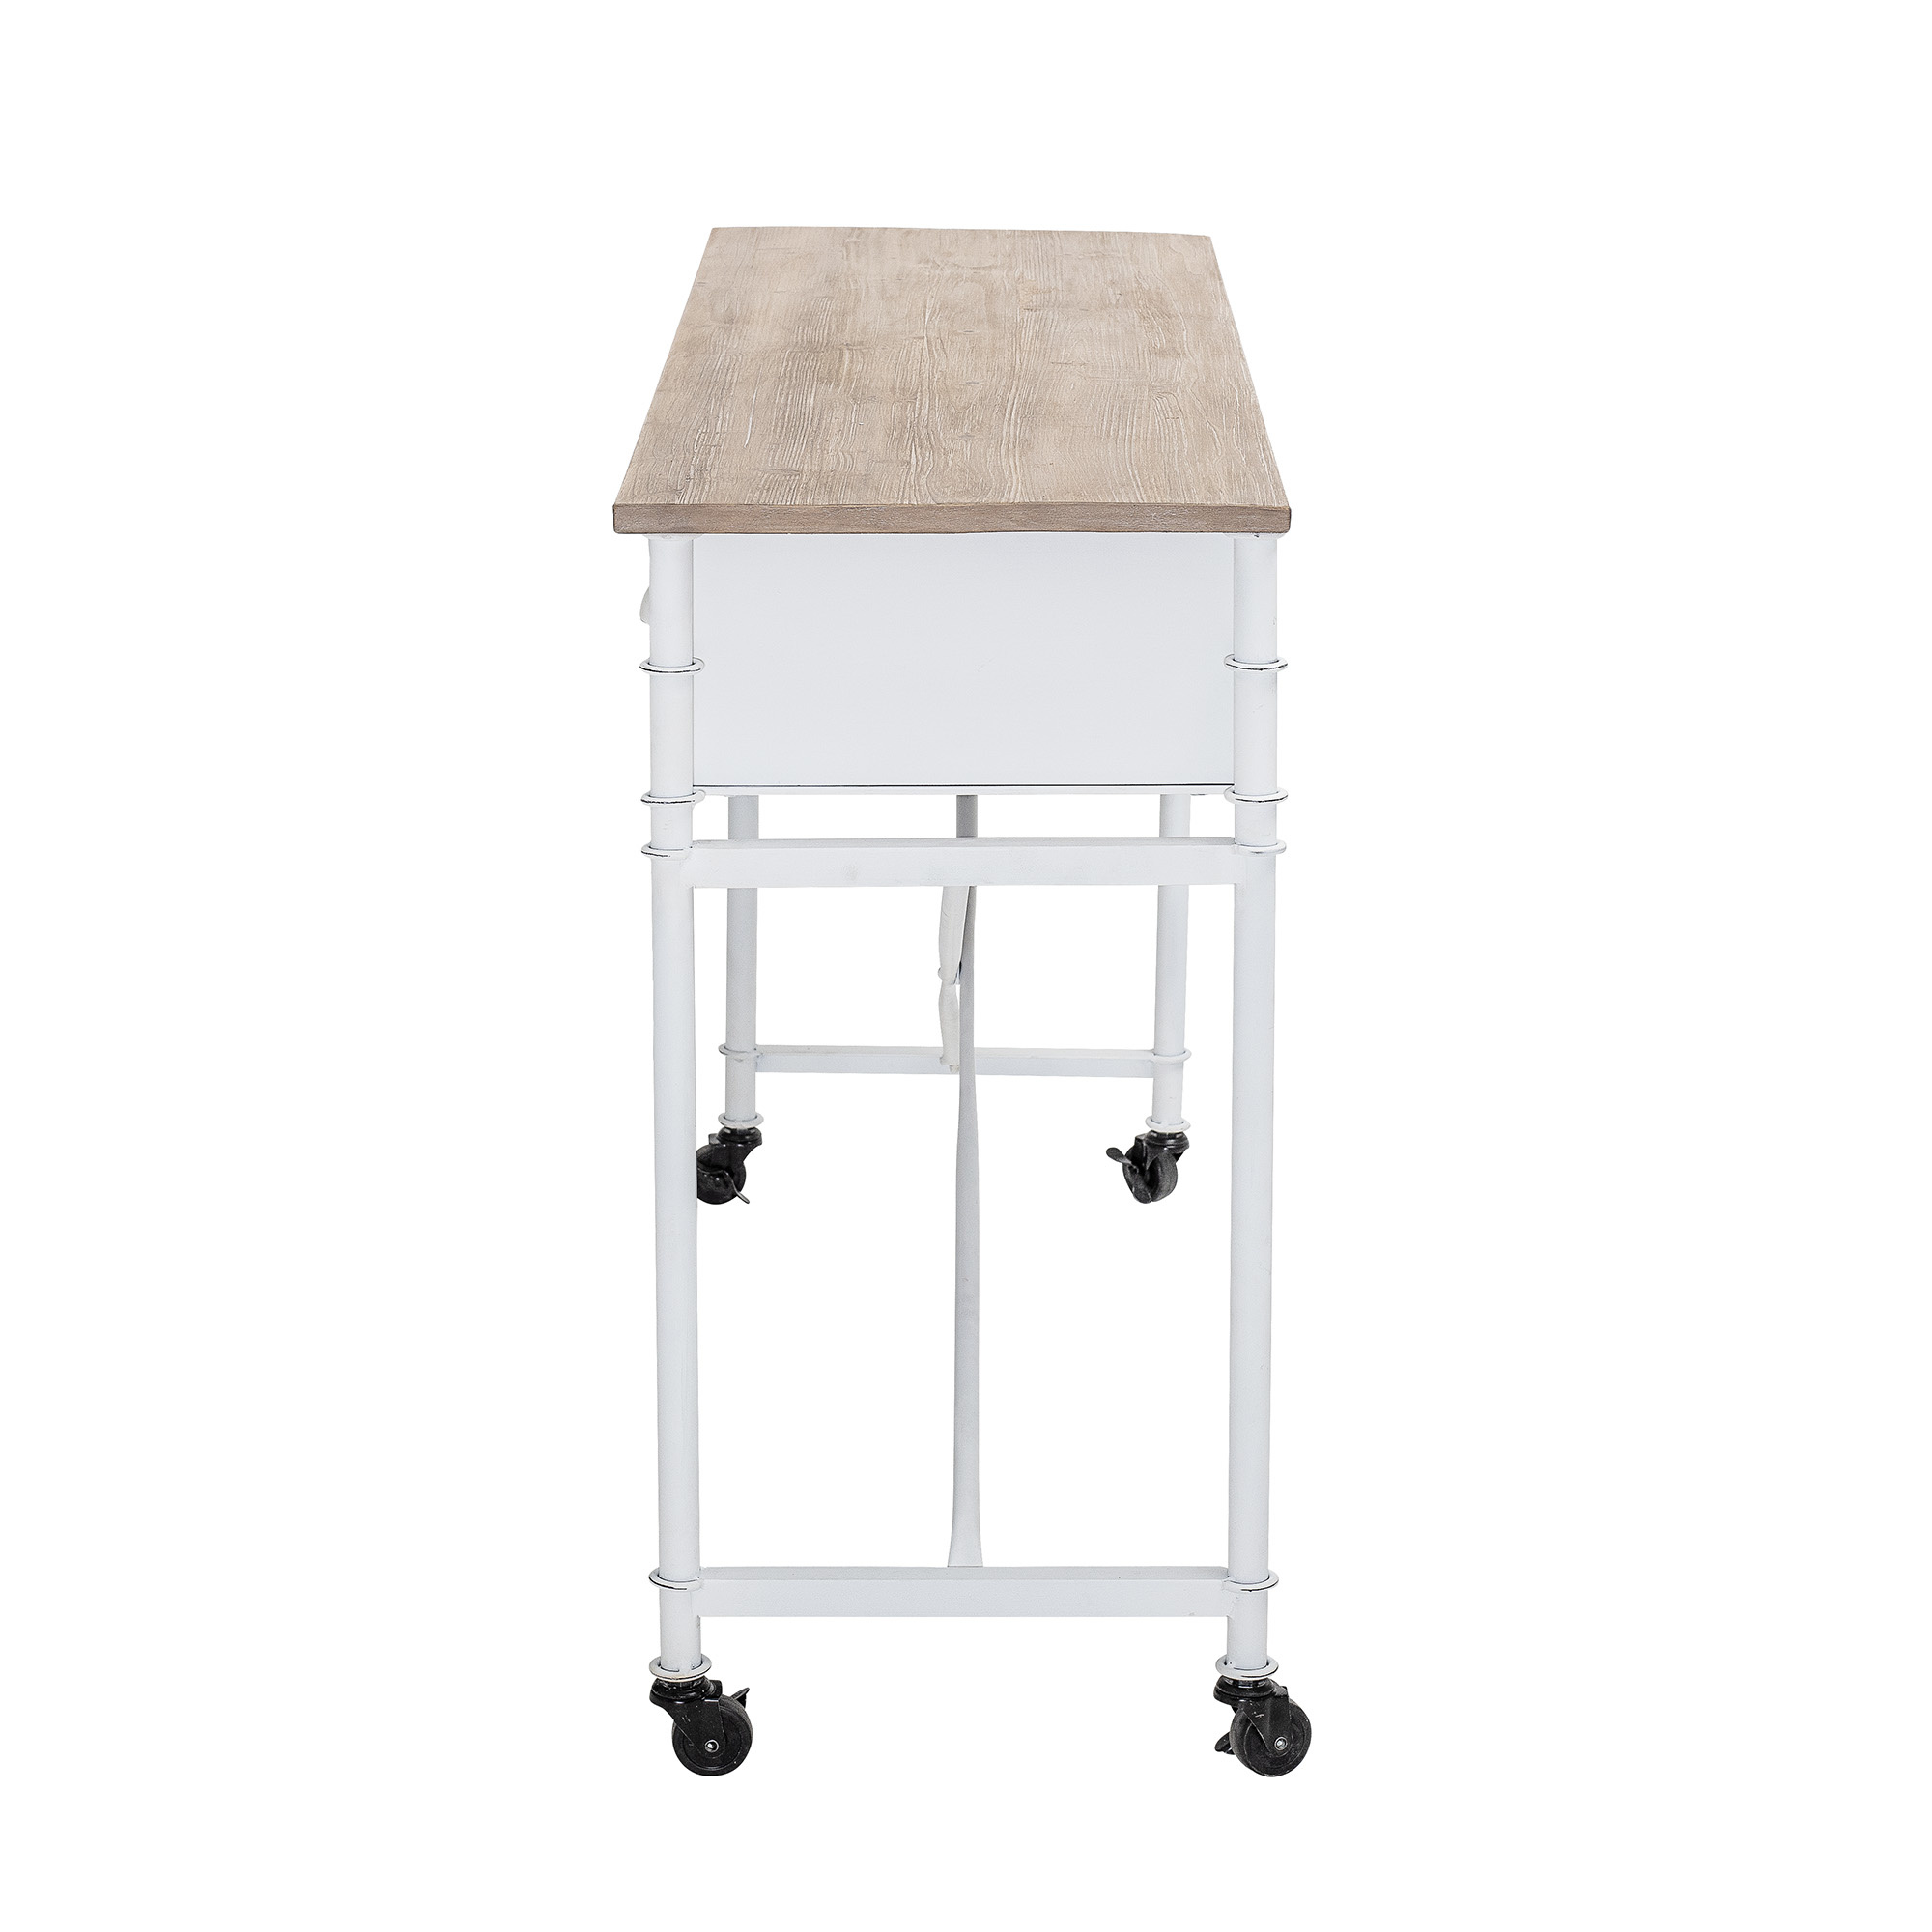 Bloomingville White desk / console - metal & wood - L120xH80xW40cm - Bloomingville